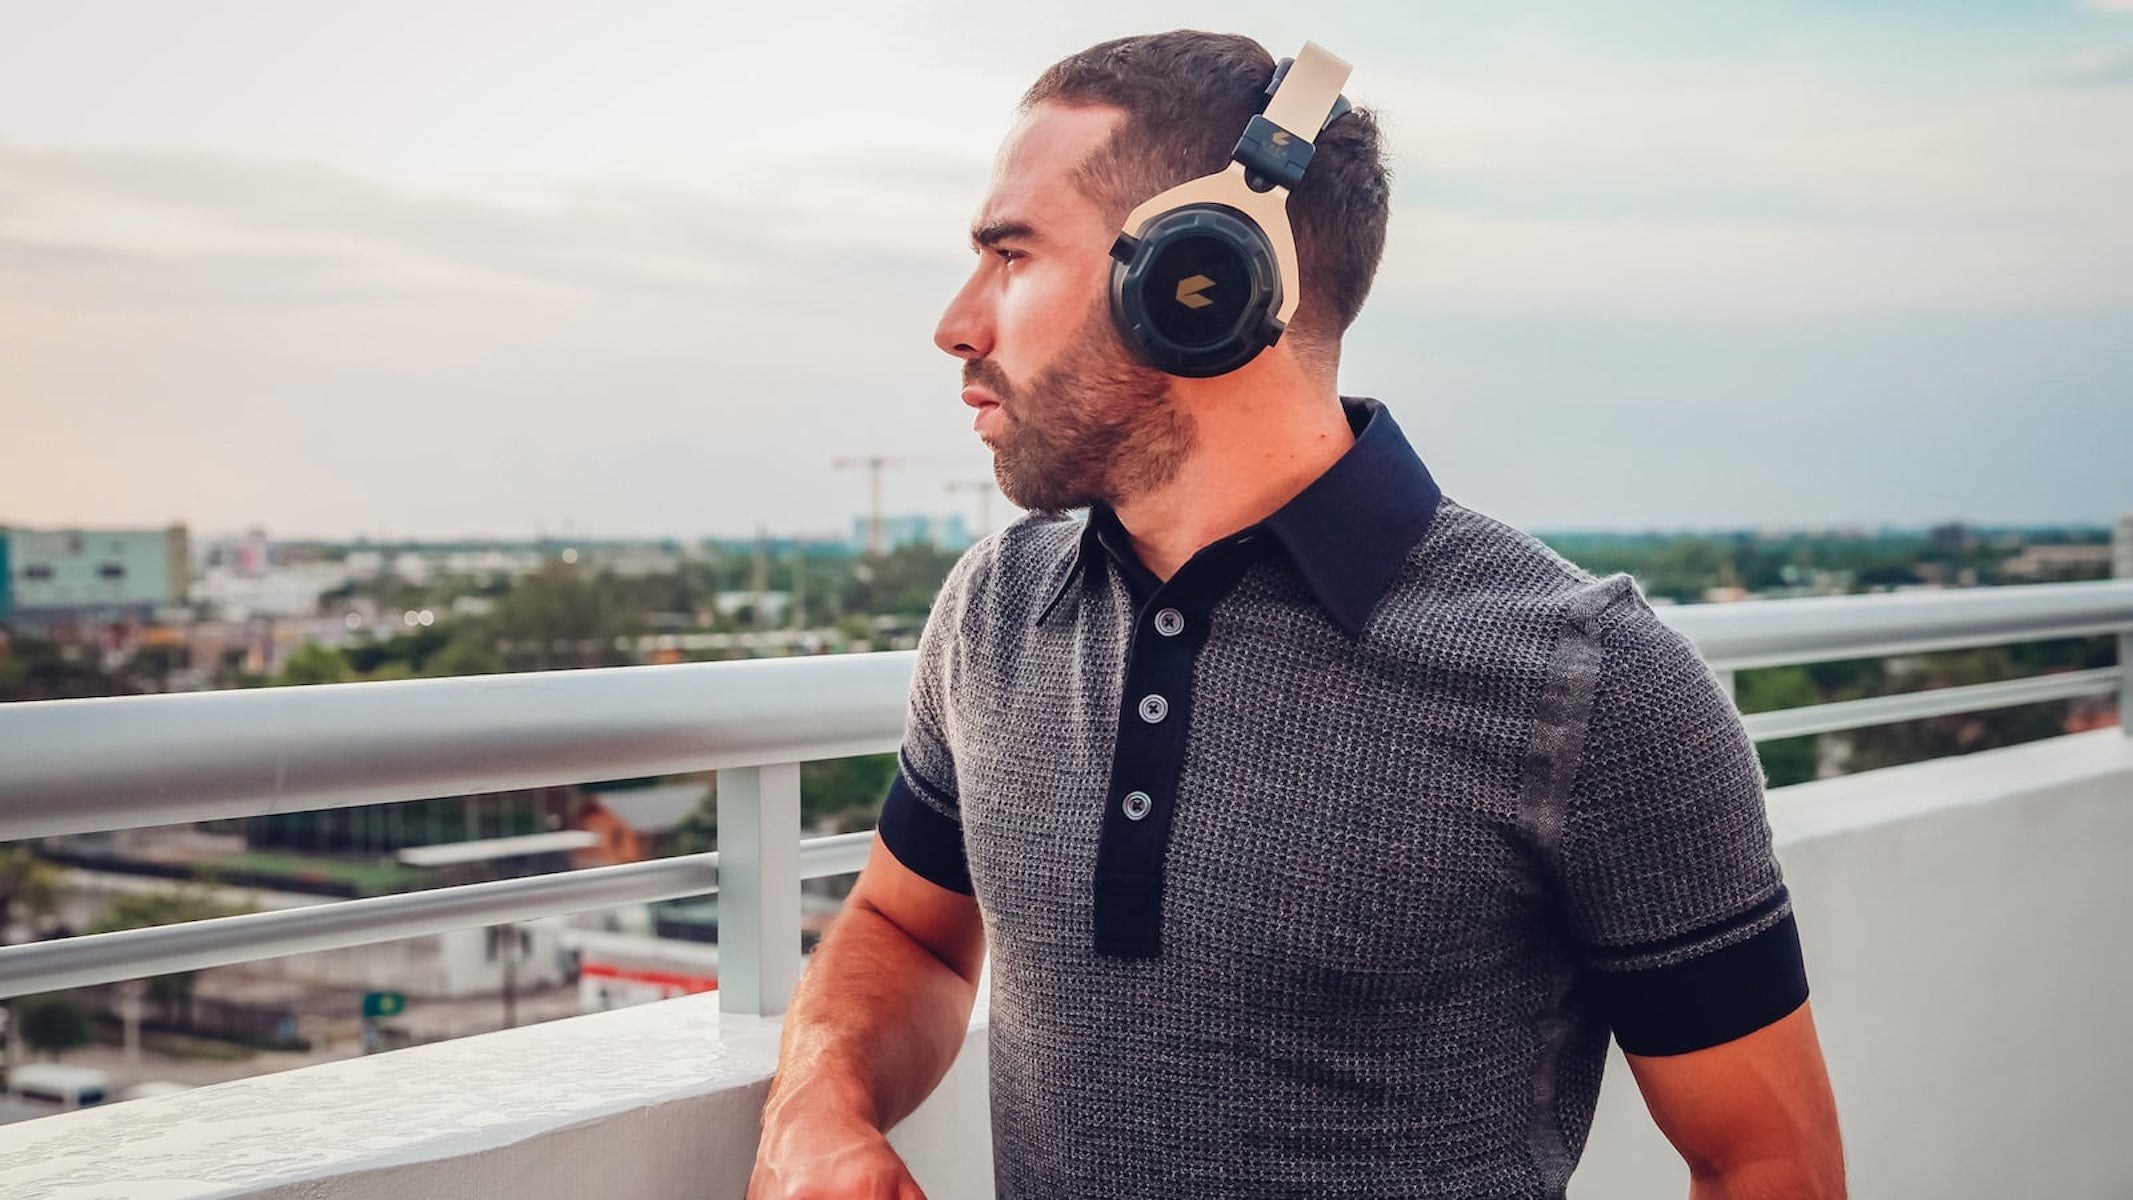 3D audio podcasts: The best 3D audio headsets to make the most of the new tech trend